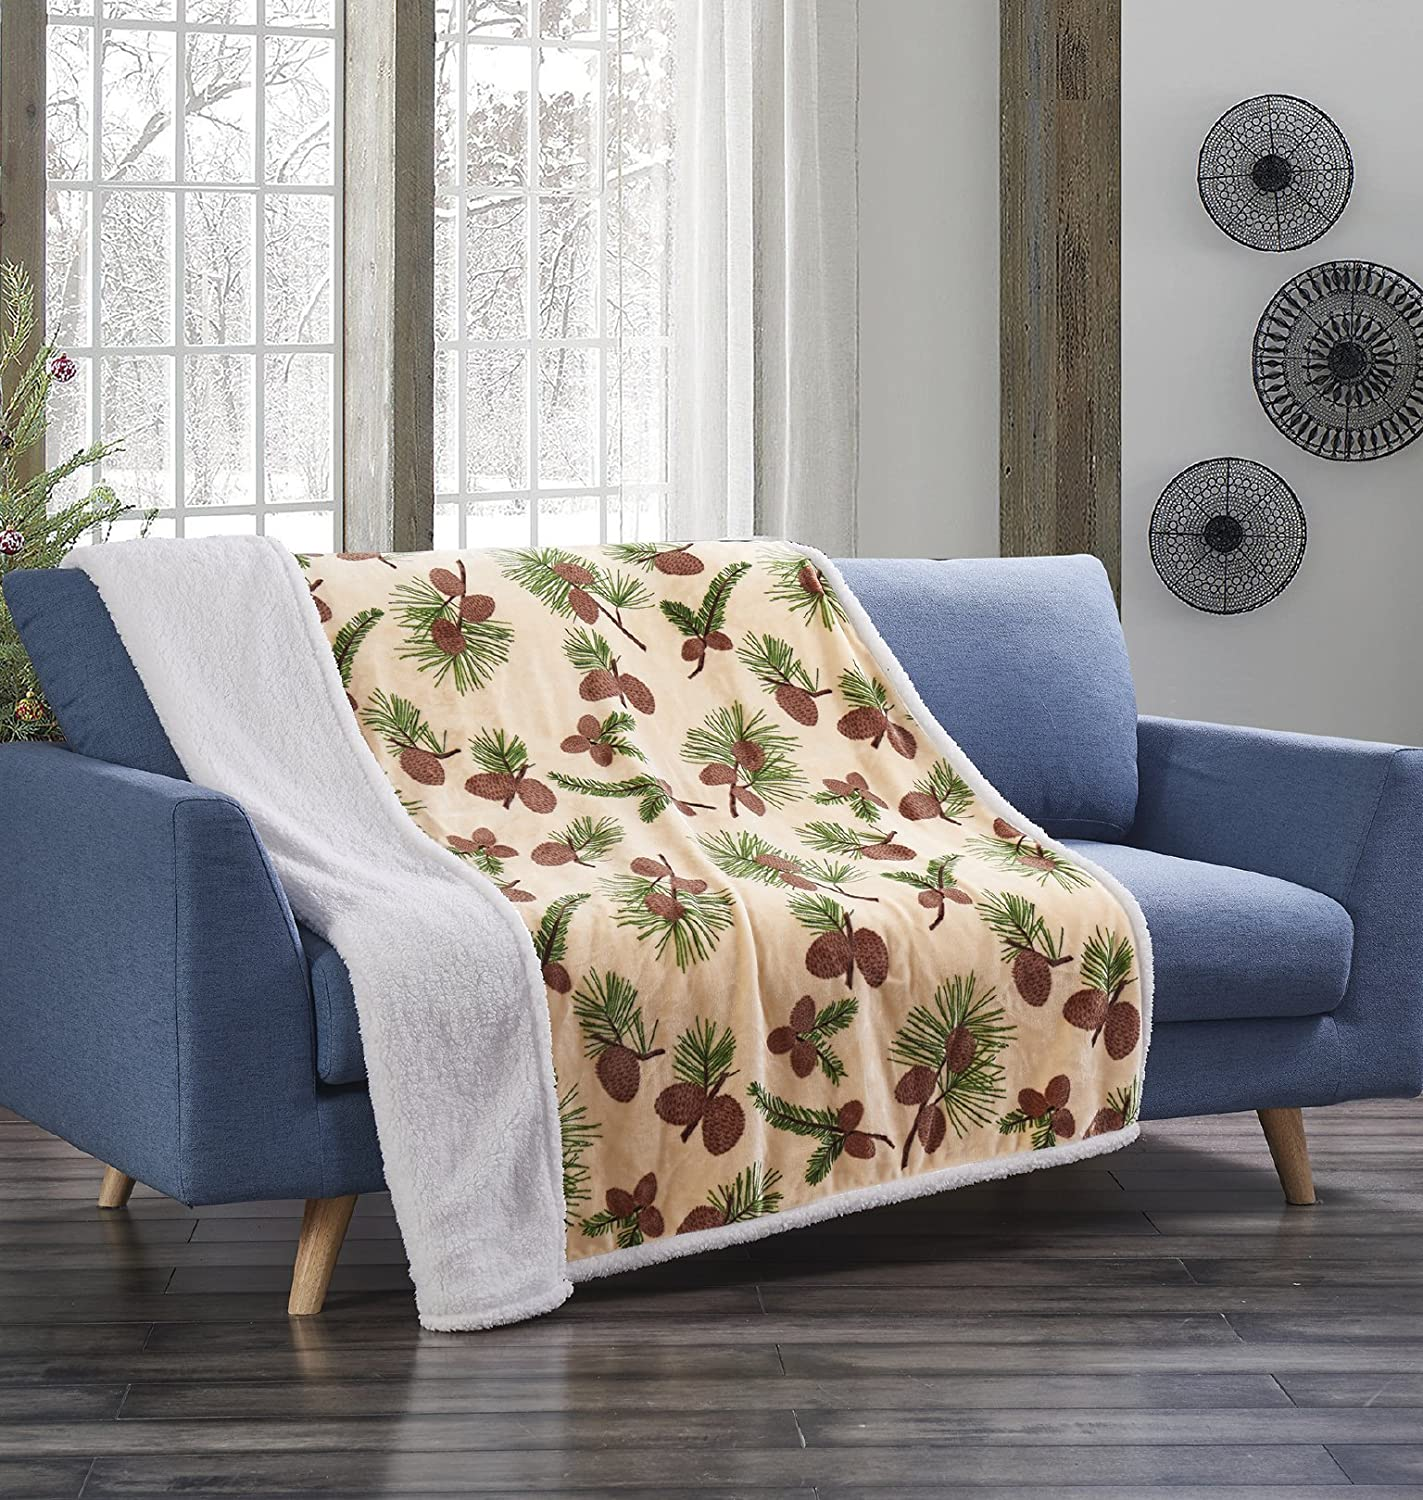 "Forest Pines Beige Pinecone Flannel Throw Blanket with Sherpa Backing 50"" x 60"""